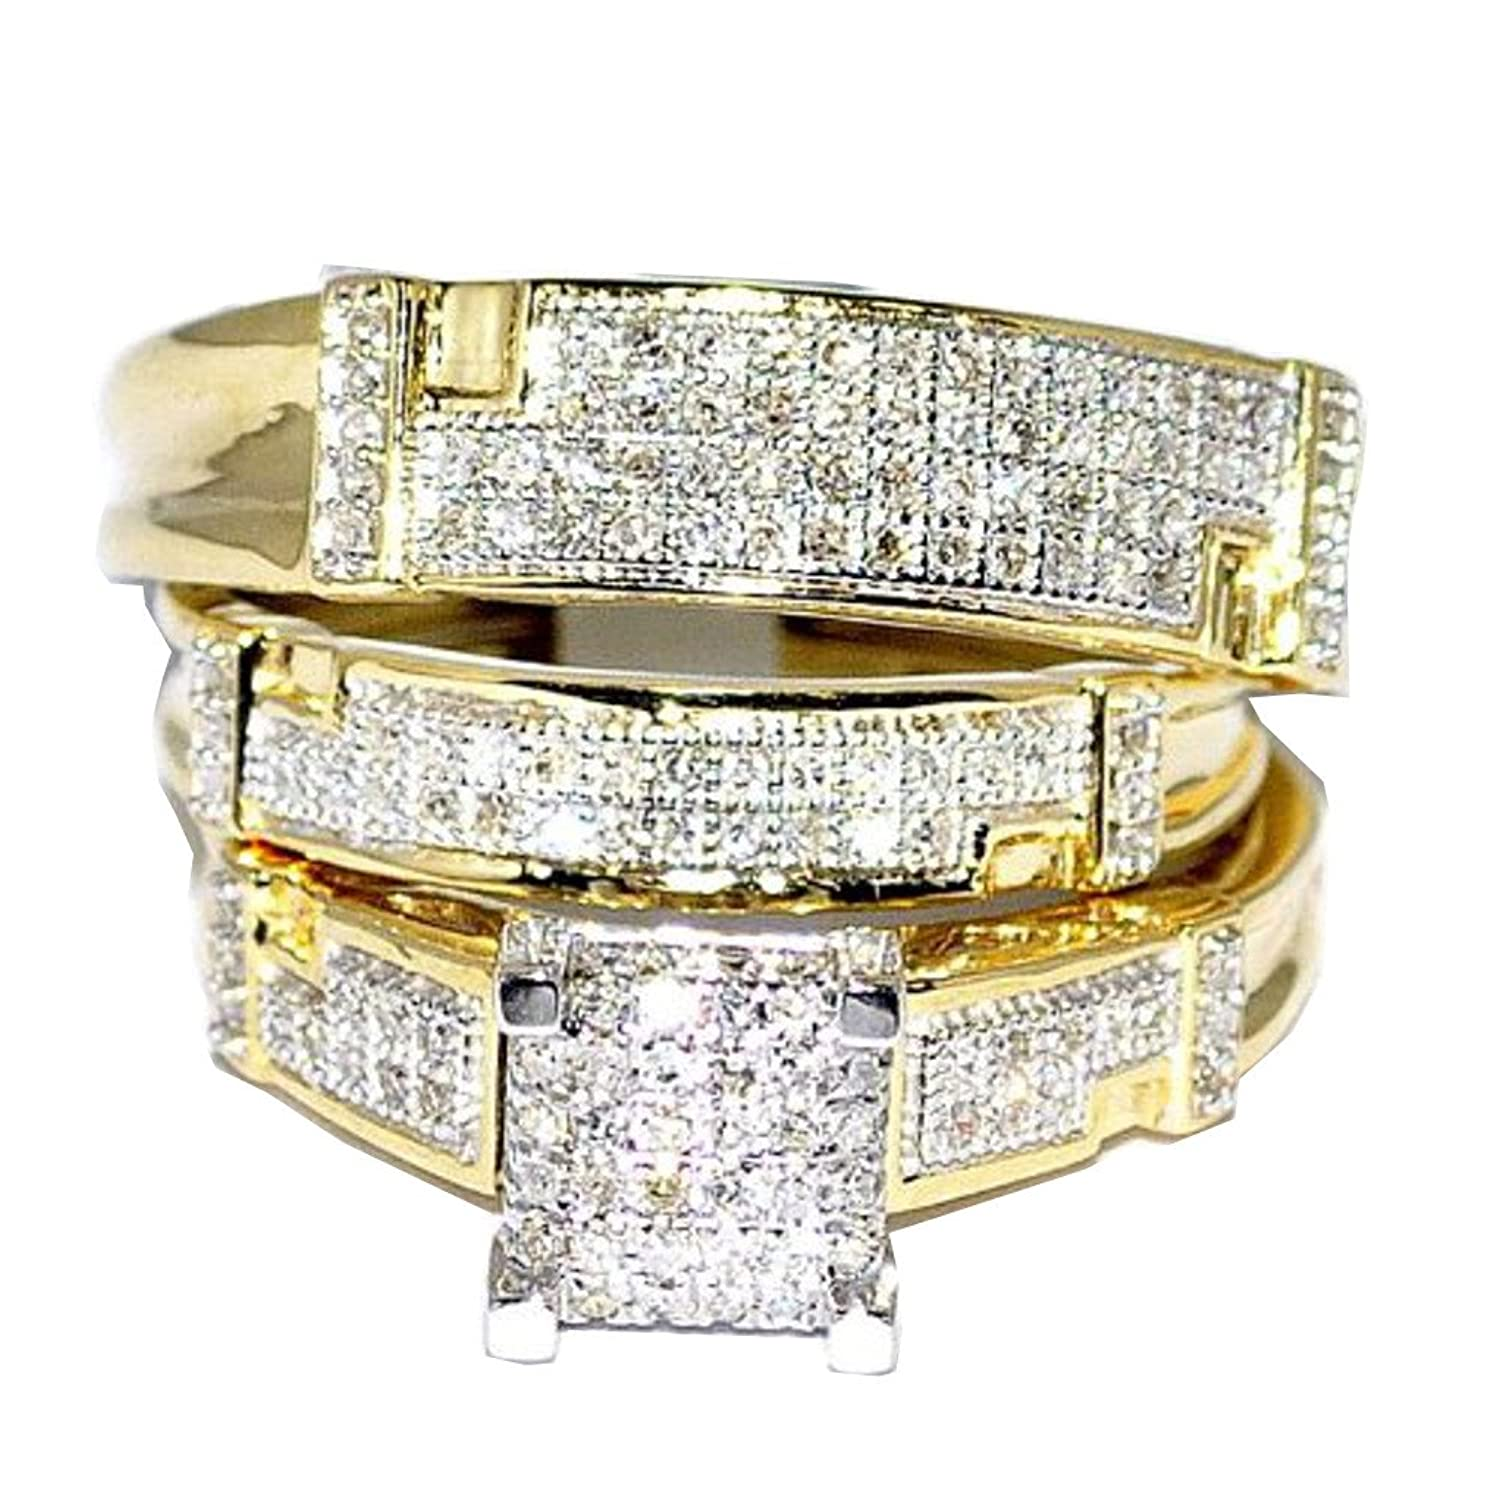 amazoncom yellow gold trio wedding set mens women rings real 12cttw diamonds pave i2i3 clarity ij color jewelry - Cheap Wedding Rings Sets For Him And Her